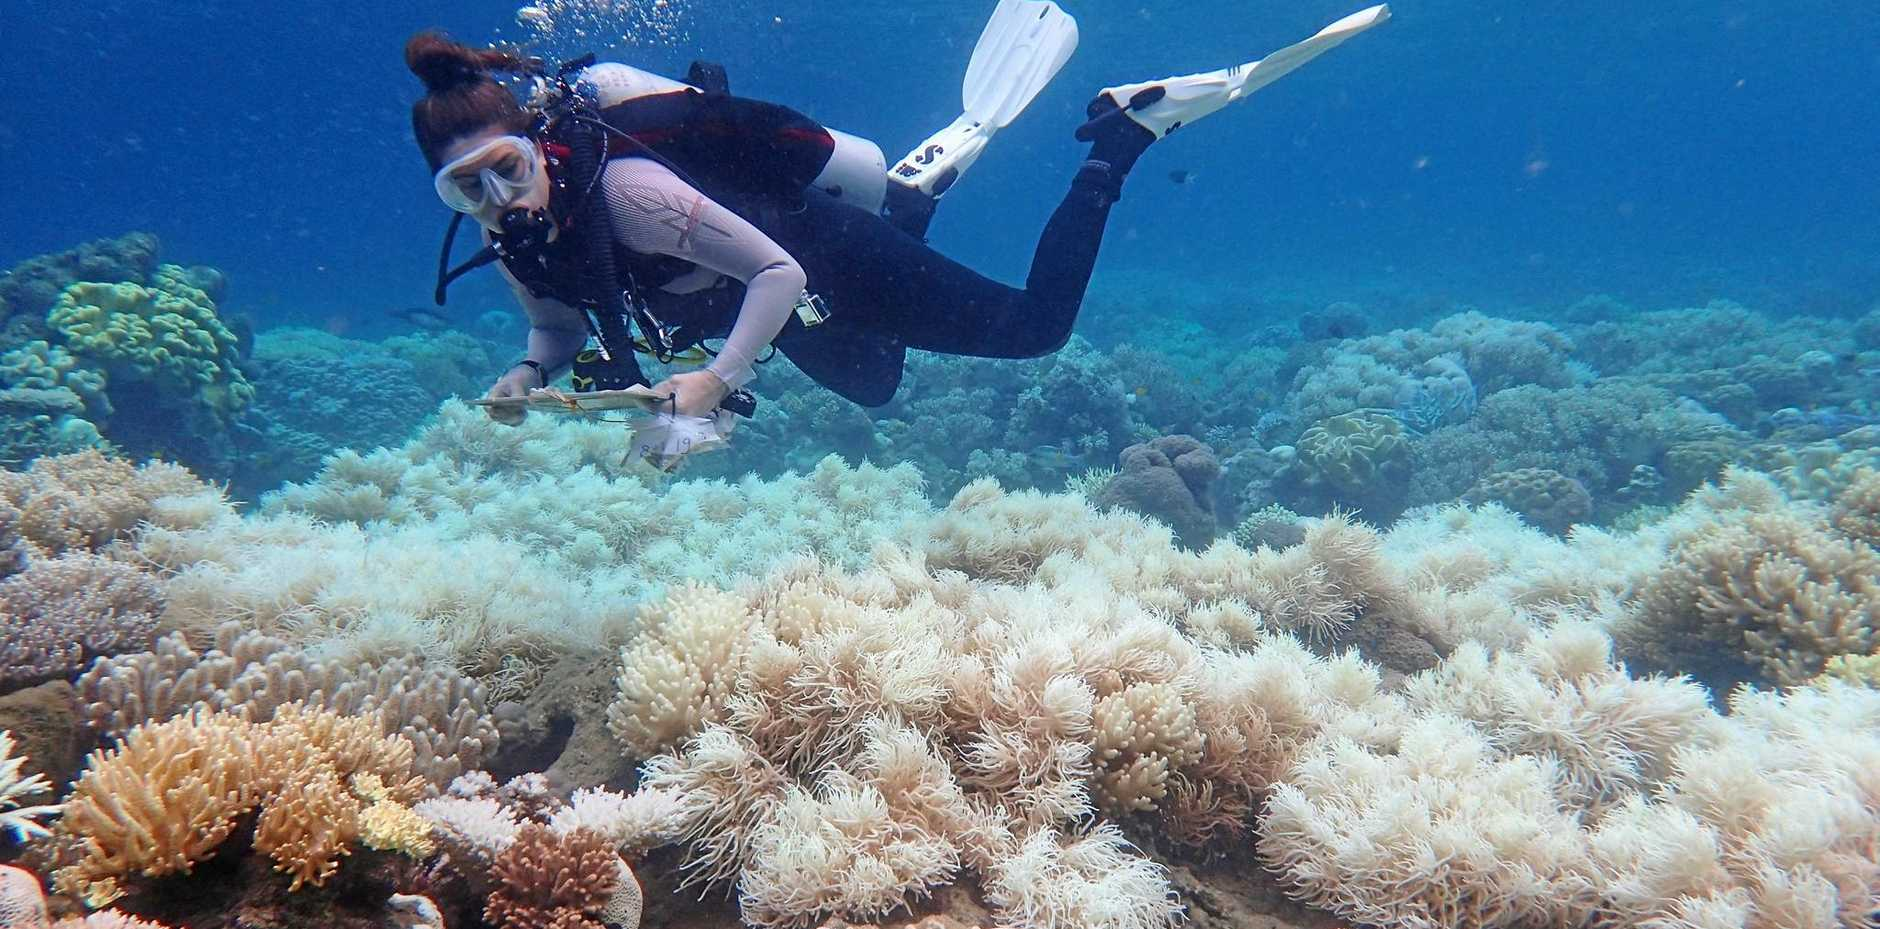 Bleaching damage on the Great Barrier Reef is being assessed after back-to-back bleaching events in the past two years.